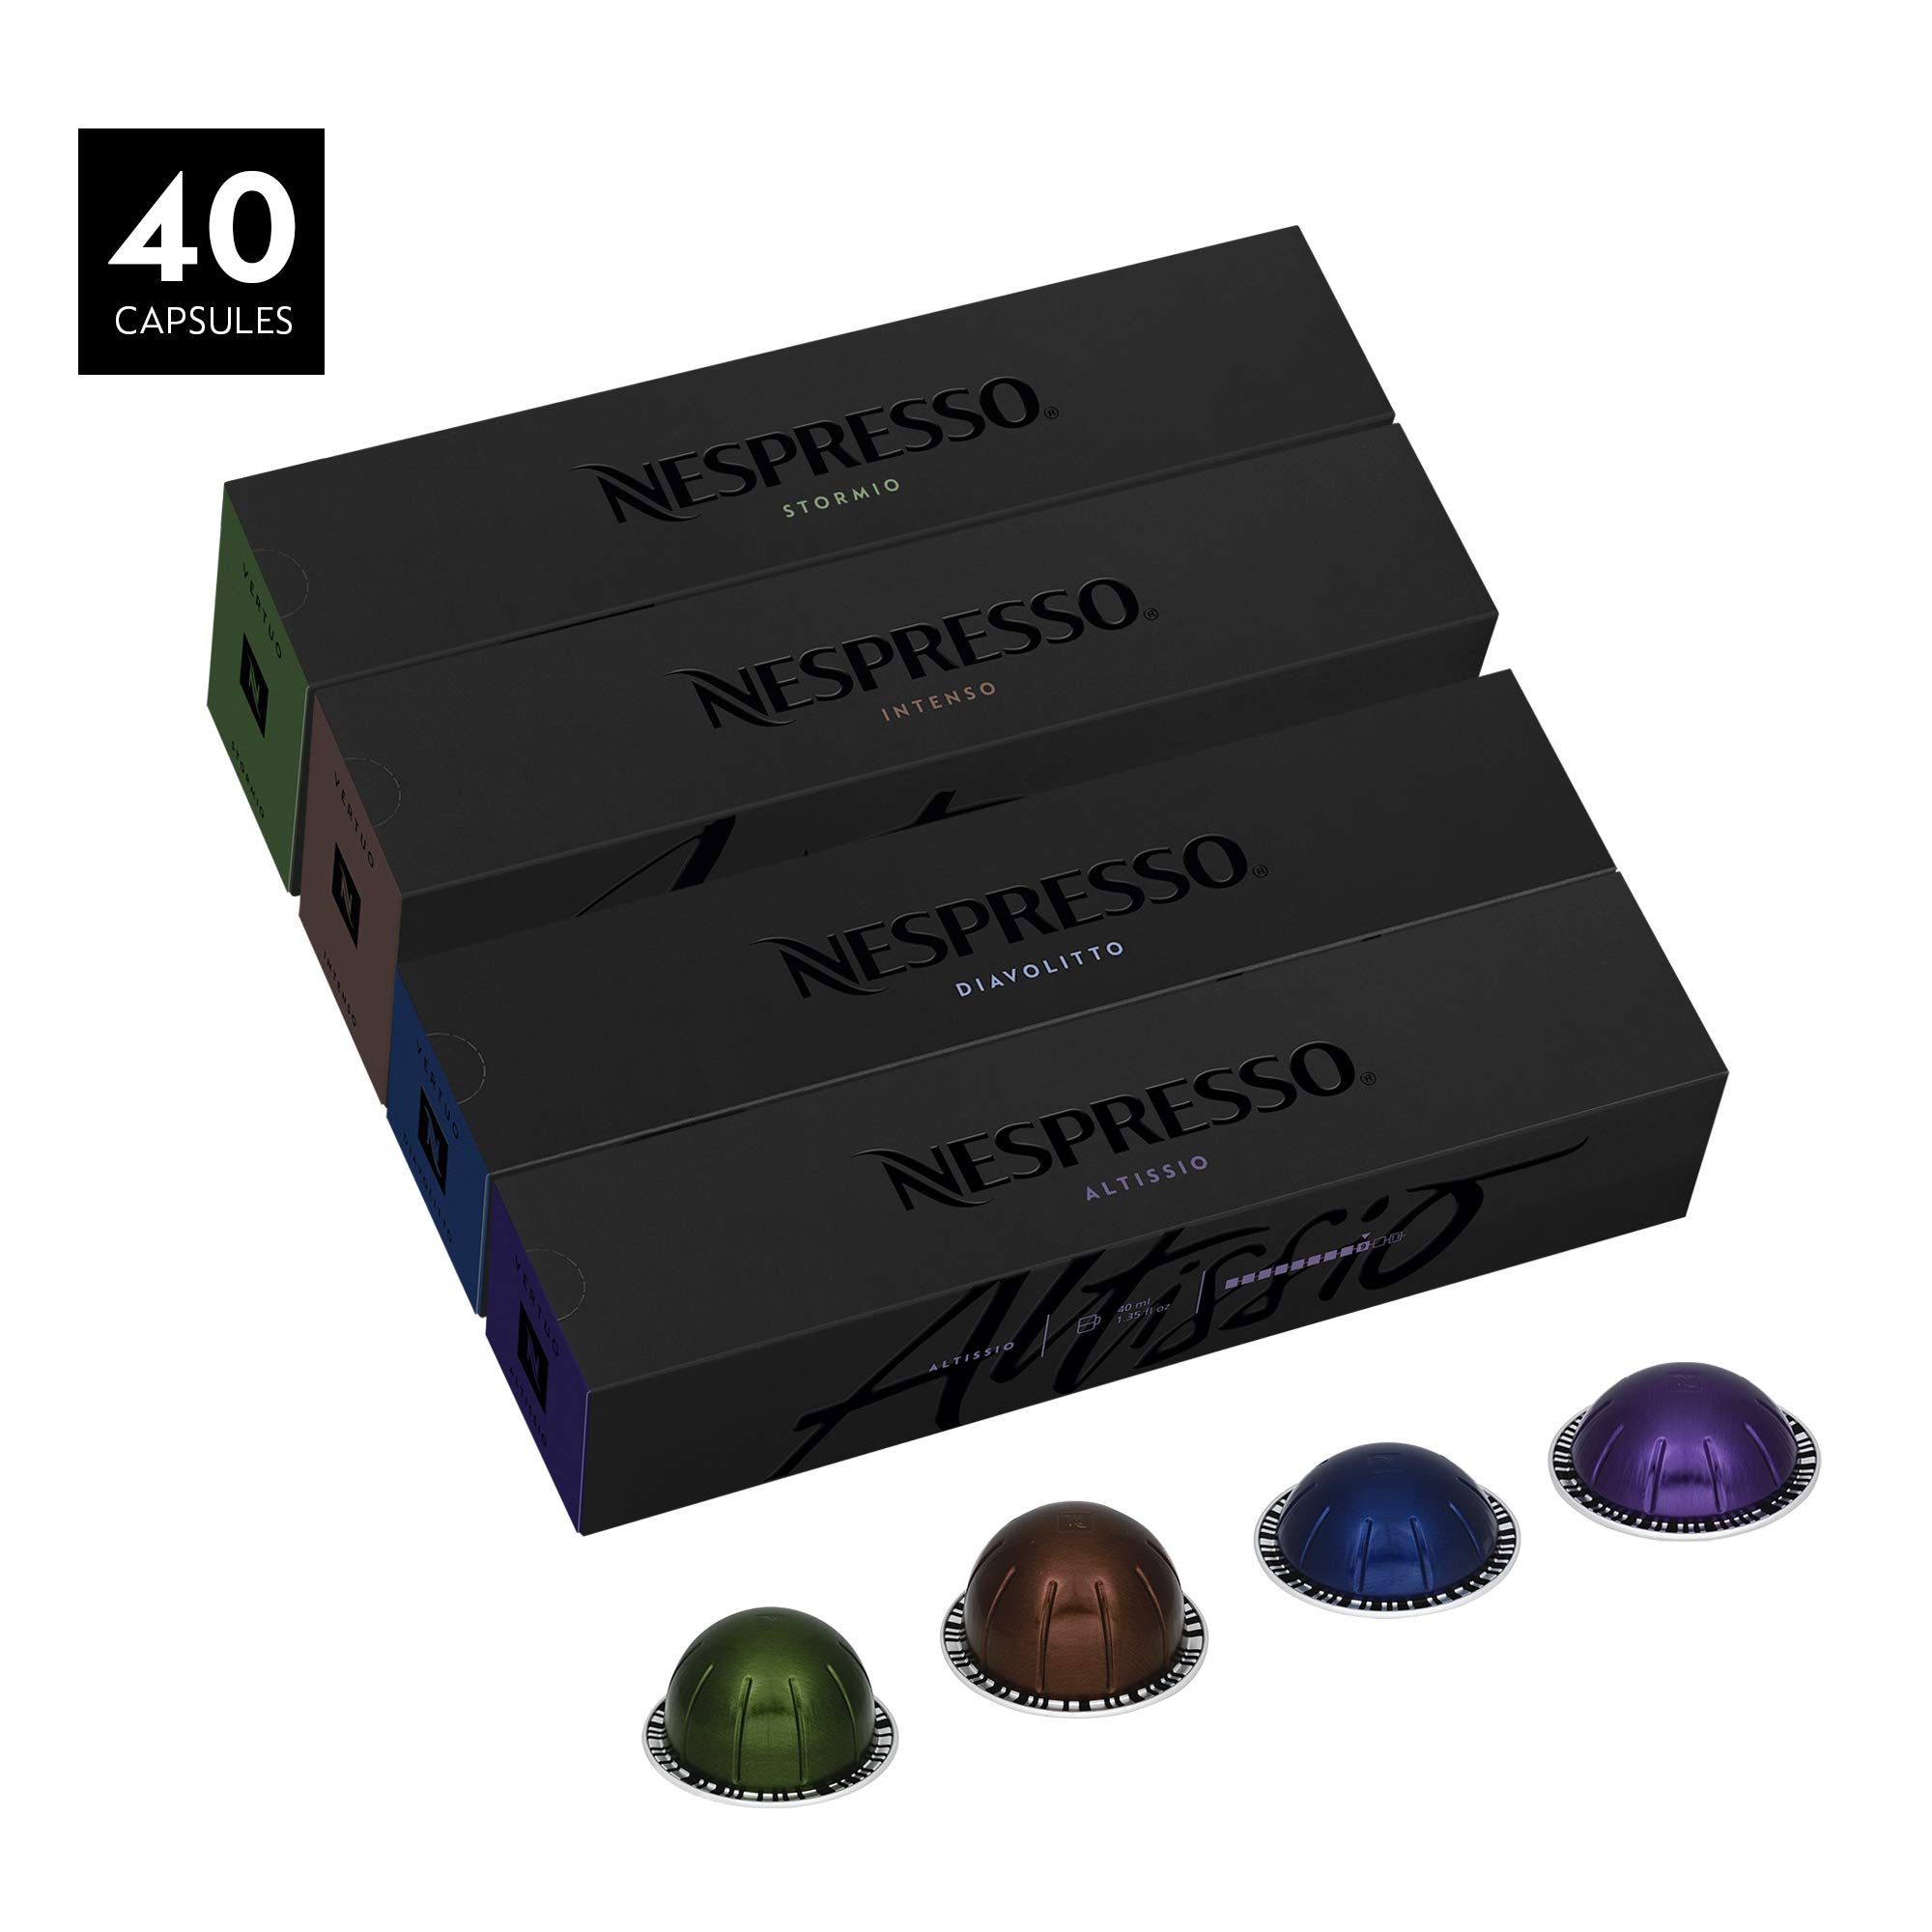 Nespresso VertuoLine Dark Assortment, 40 Capsules by Nespresso